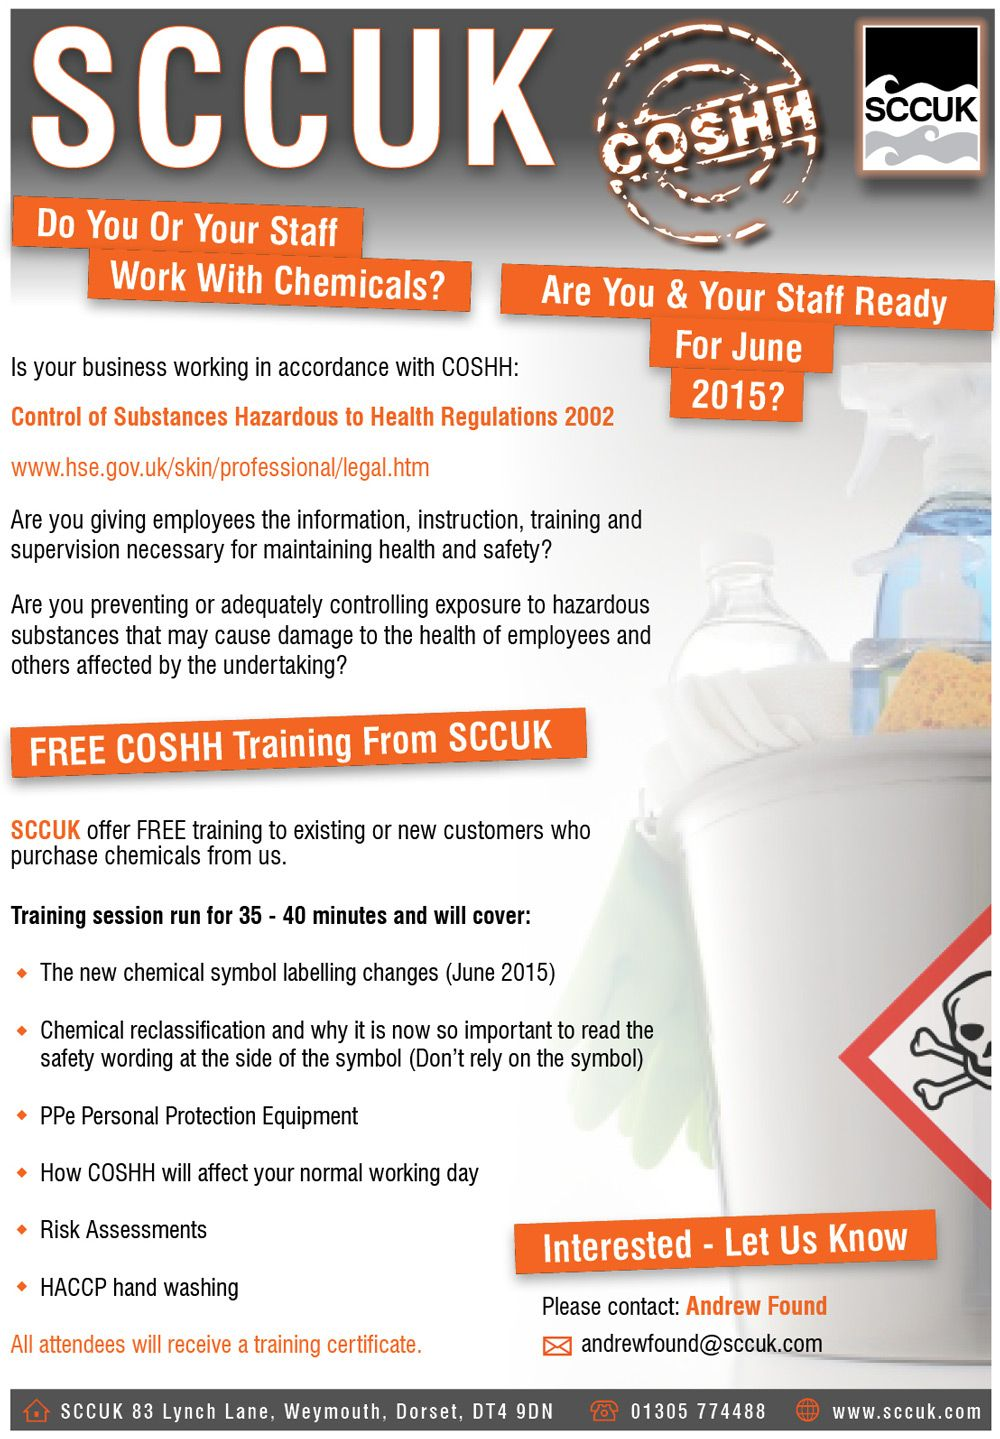 SCCUK now offer COSHH training FREE to customers who